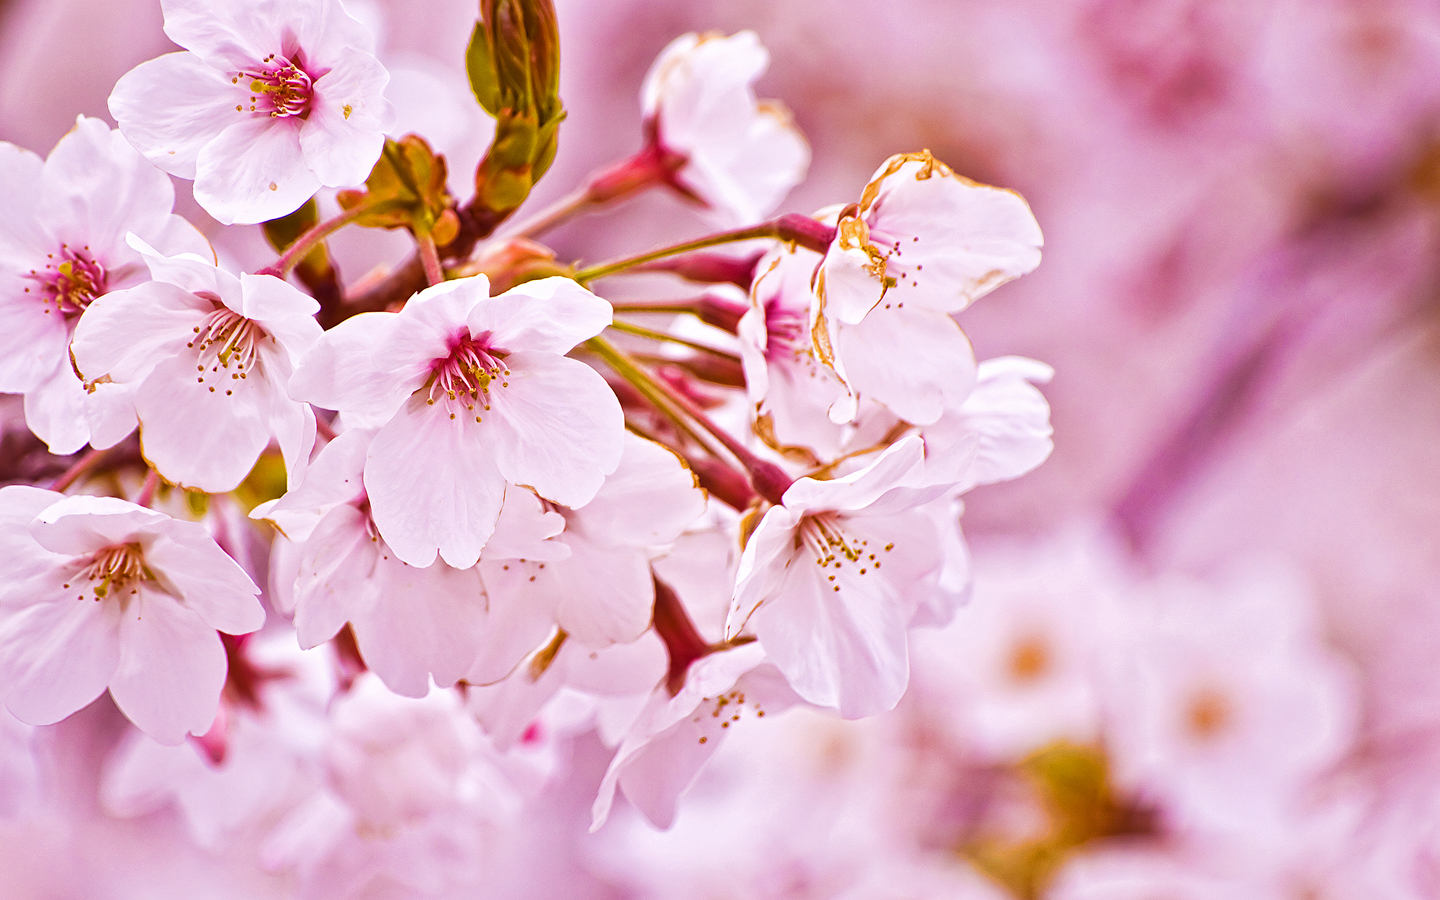 Description: Nature Sakura Flower is a hi res Wallpaper for pc